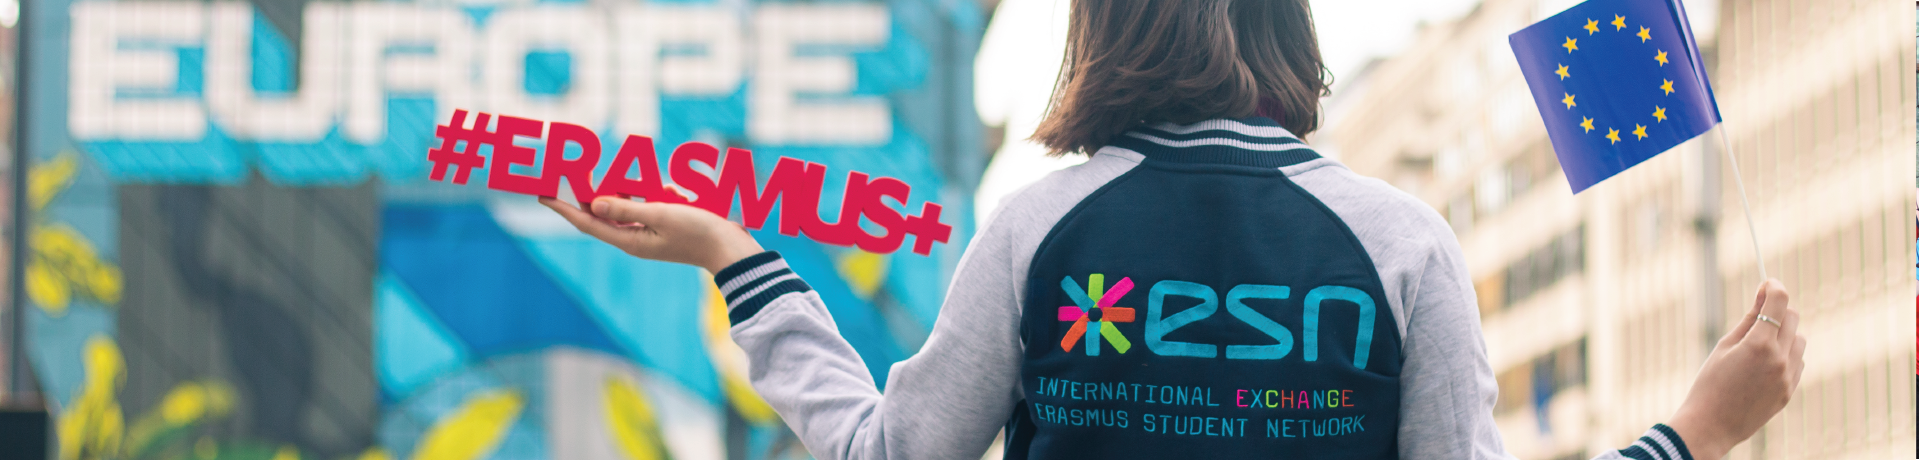 Volunteering promoting the Erasmus+ program